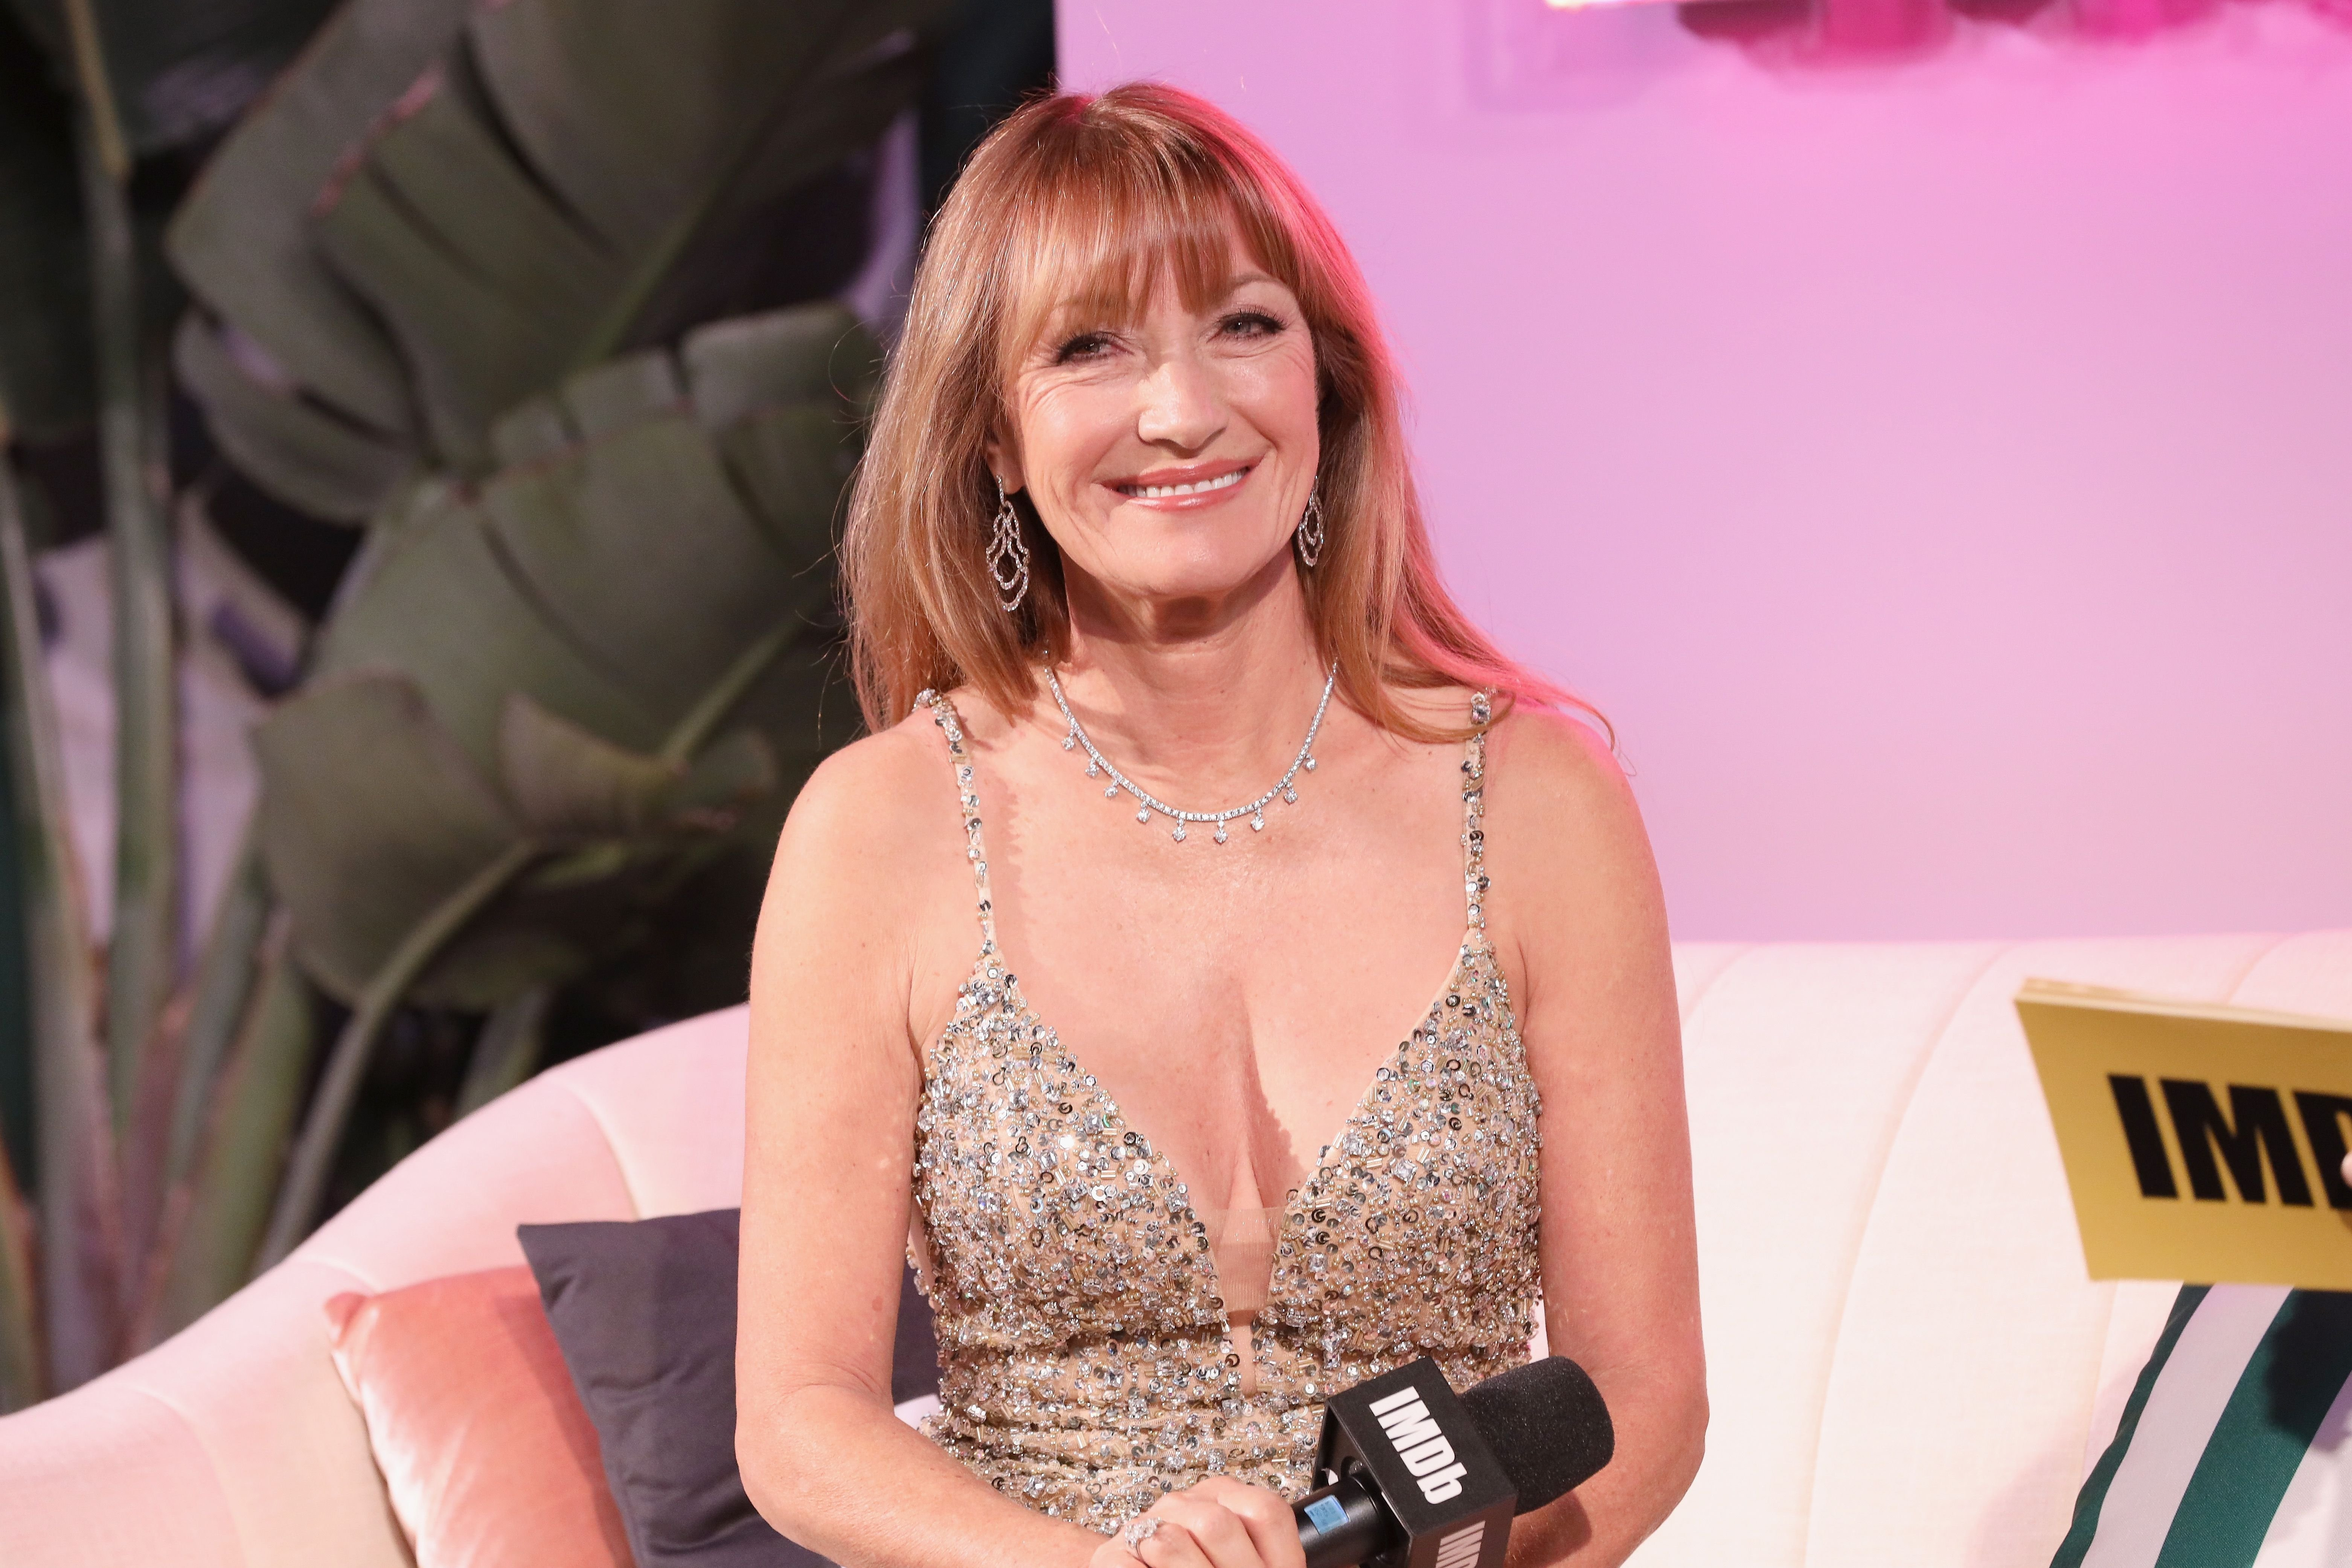 Jane Seymour at IMDb LIVE At The Elton John AIDS Foundation Academy Awards® Viewing Party on February 24, 2019, in Los Angeles, California | Photo: Rich Polk/Getty Images